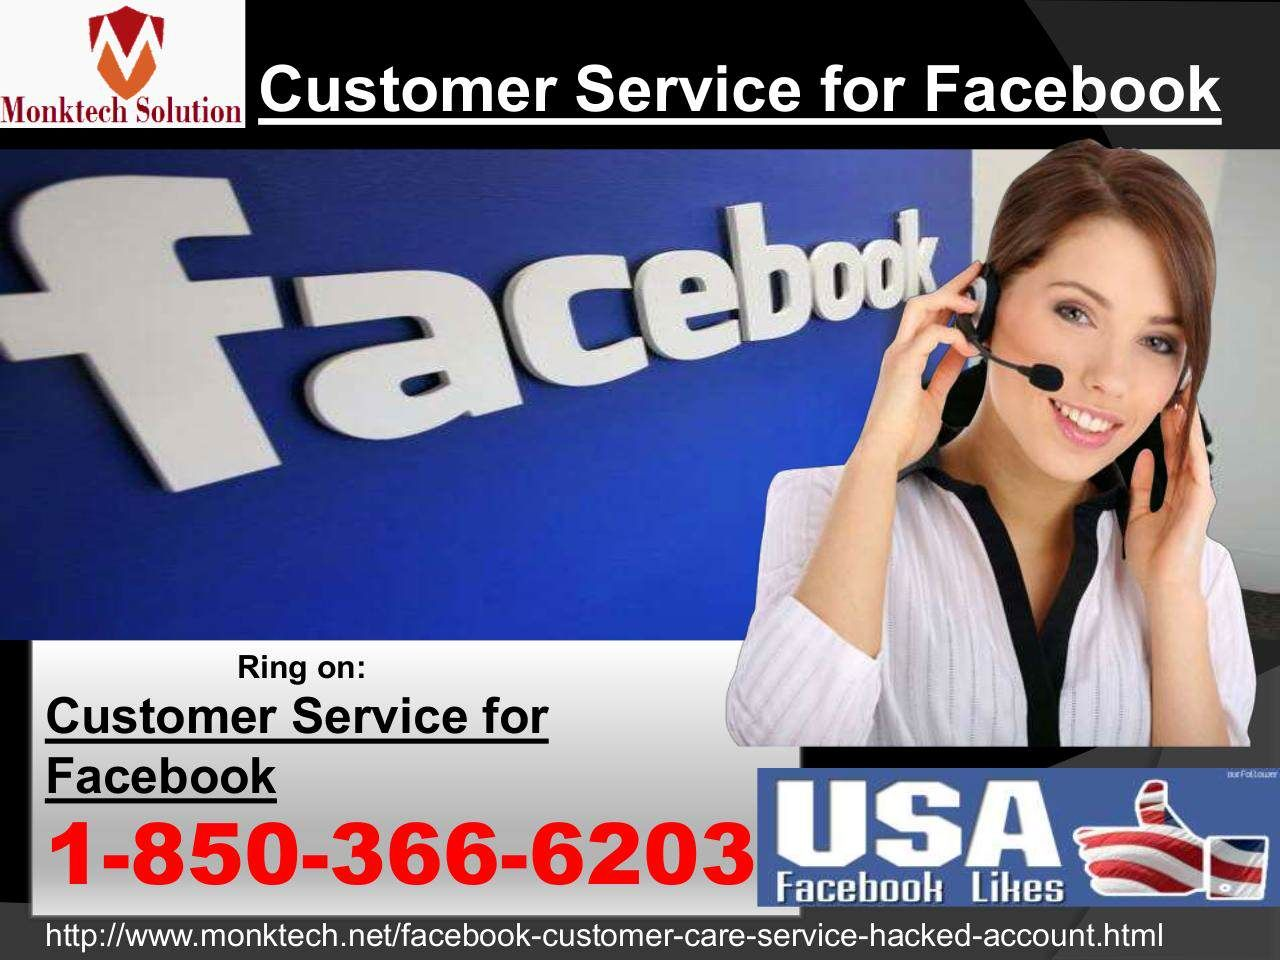 Get top ten points about Customer Service for Facebook at 1-850-366-6203Our without toll number 1-850-366-6203 is the fastest approach to get Customer Service for Facebook since this number can be dialed at whenever from anyplace and our client's call dependably reacted by the specialists who will deal with any sort of Facebook issues inside a moment all because of their experience. To get more information visit http://www.monktech.net/facebook-customer-care-service-hacked-account.html